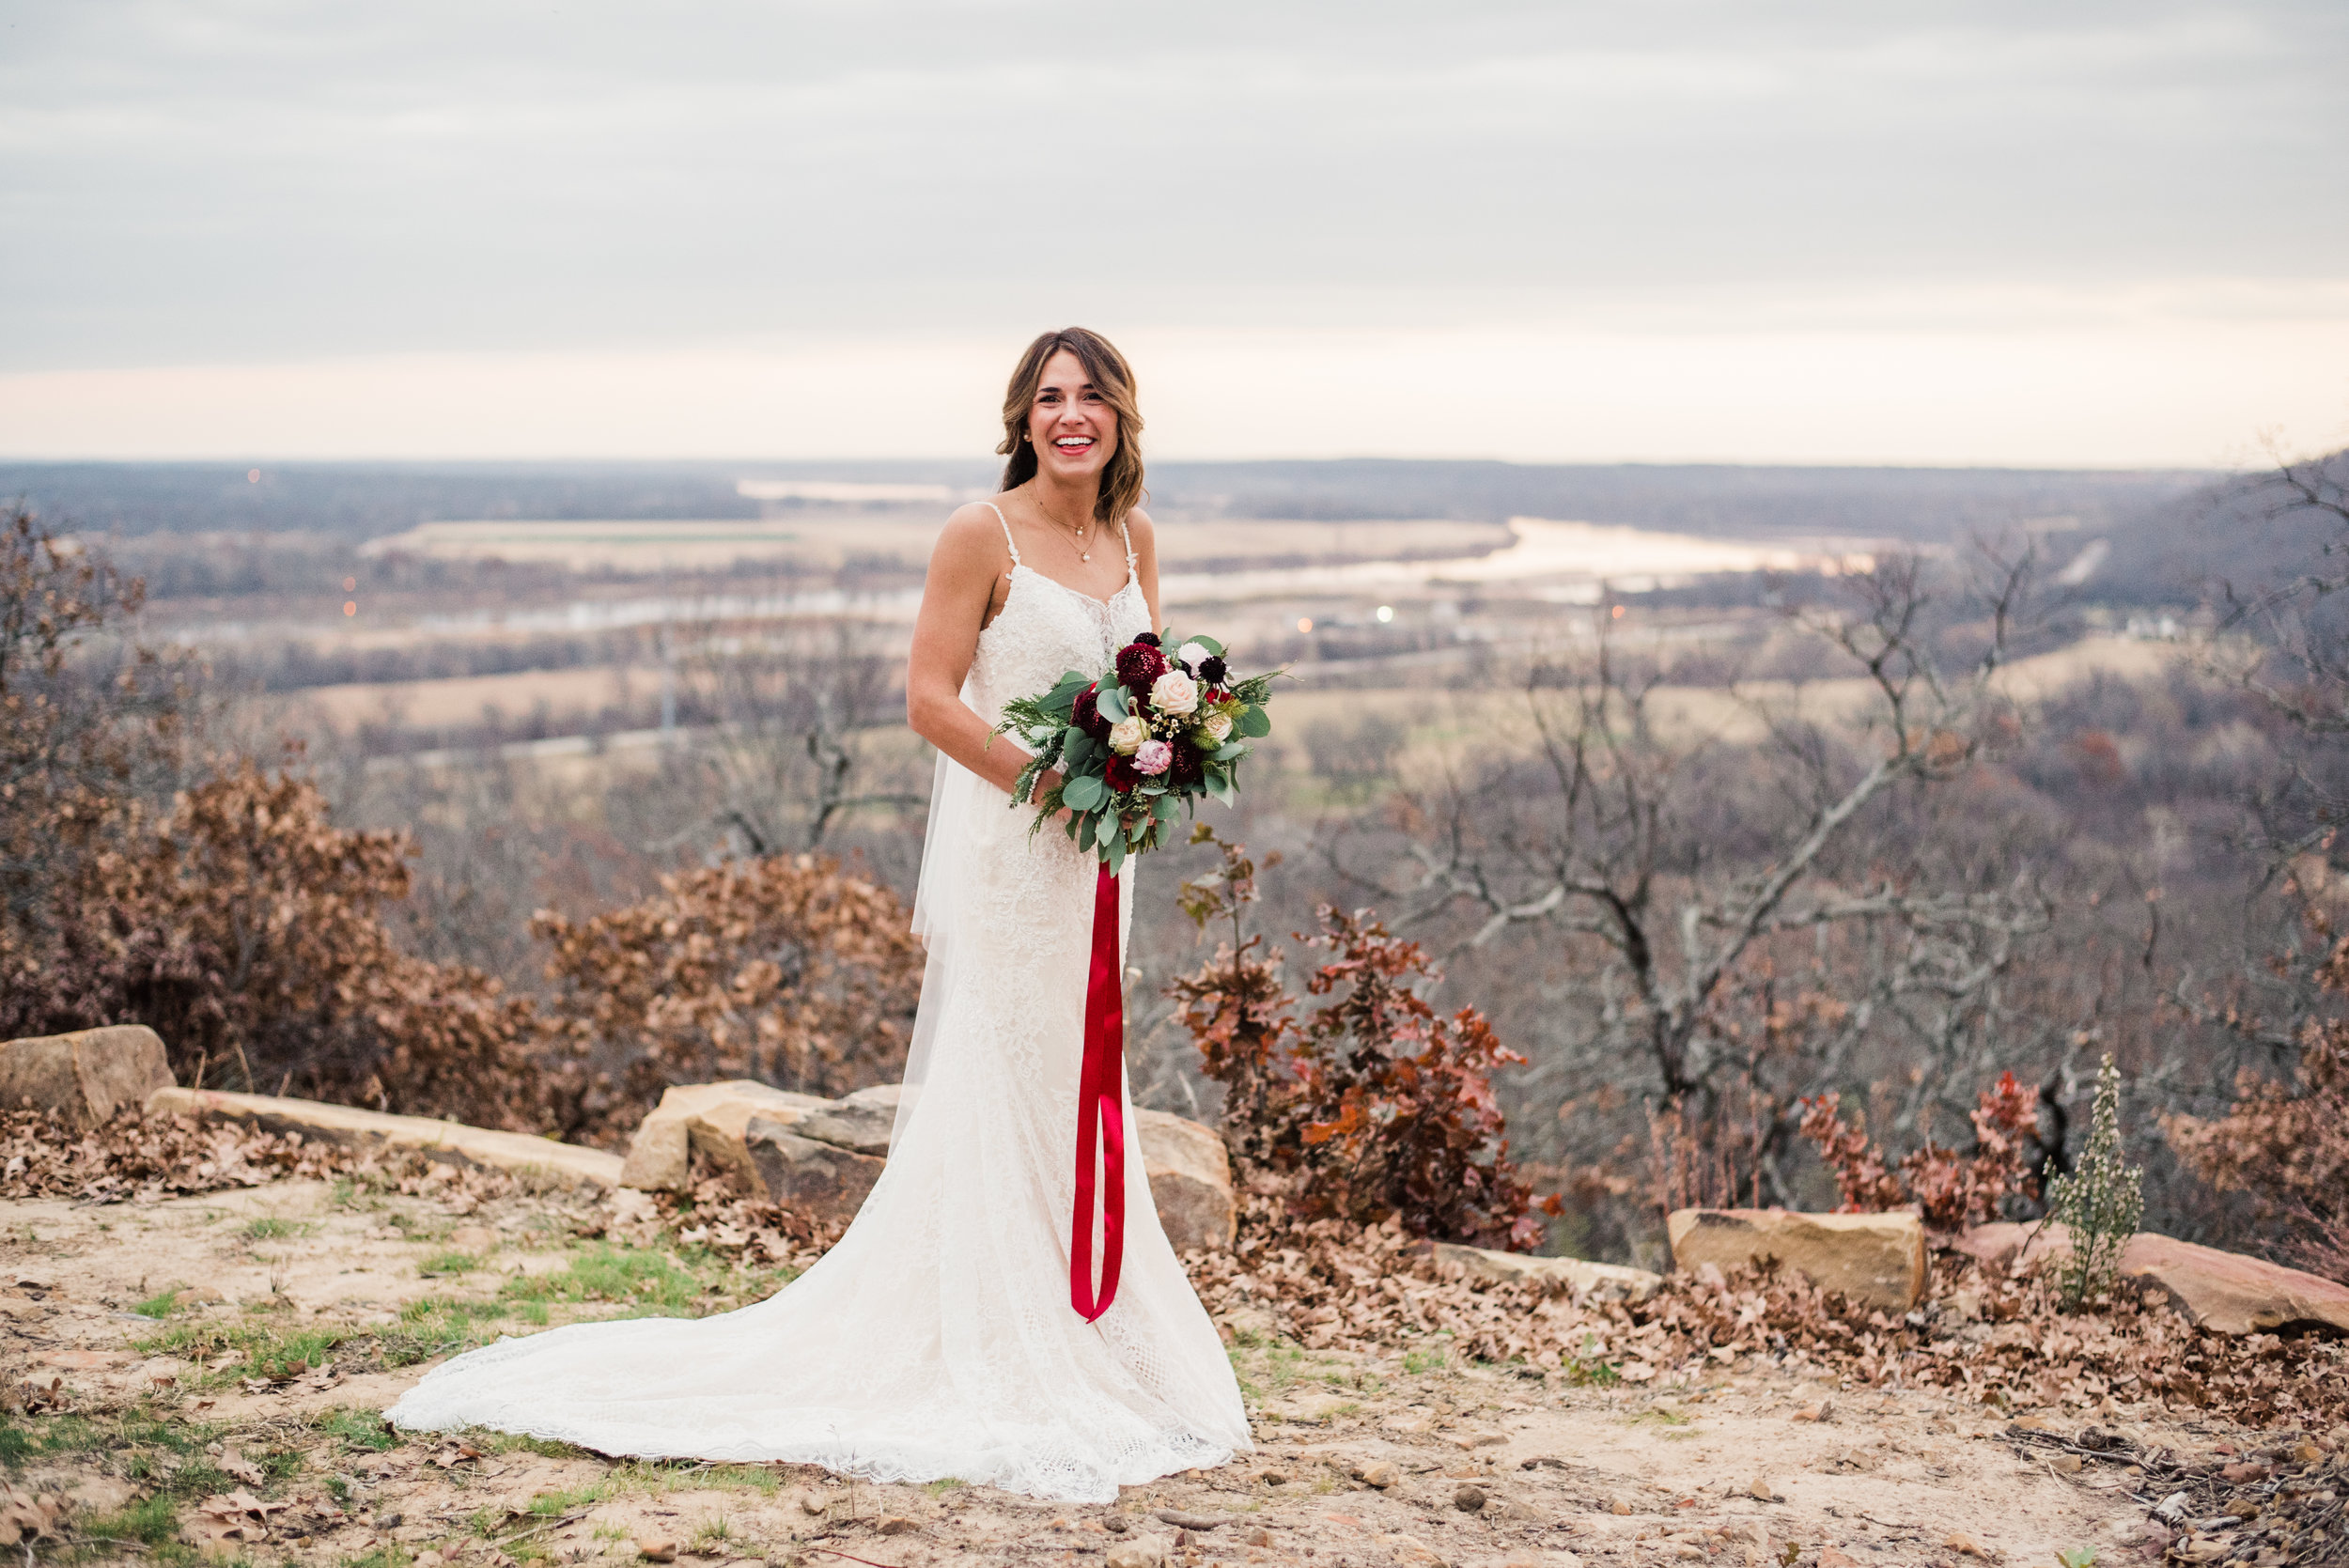 tulsa bixby wedding venue outdoor.jpg